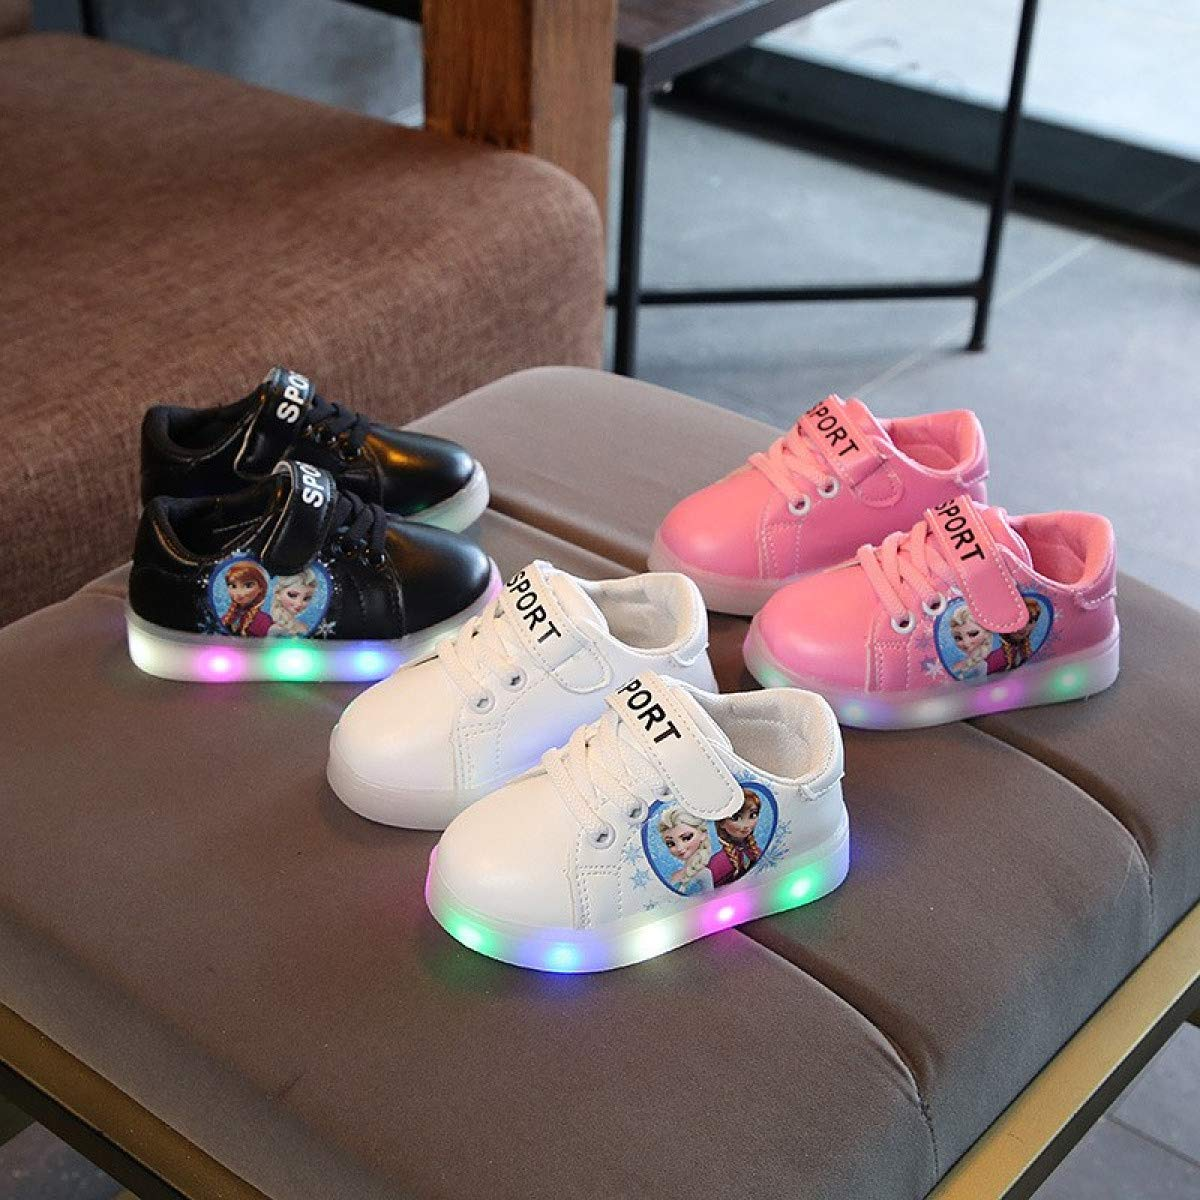 MELLOW SHOP Kids LED Shoes / /  New Spring Autumn Kids Led Shoes Fashion Glowing Sneakers for Girls Boys Mesh Children Shoes Led Luminous Shoes Sneakers